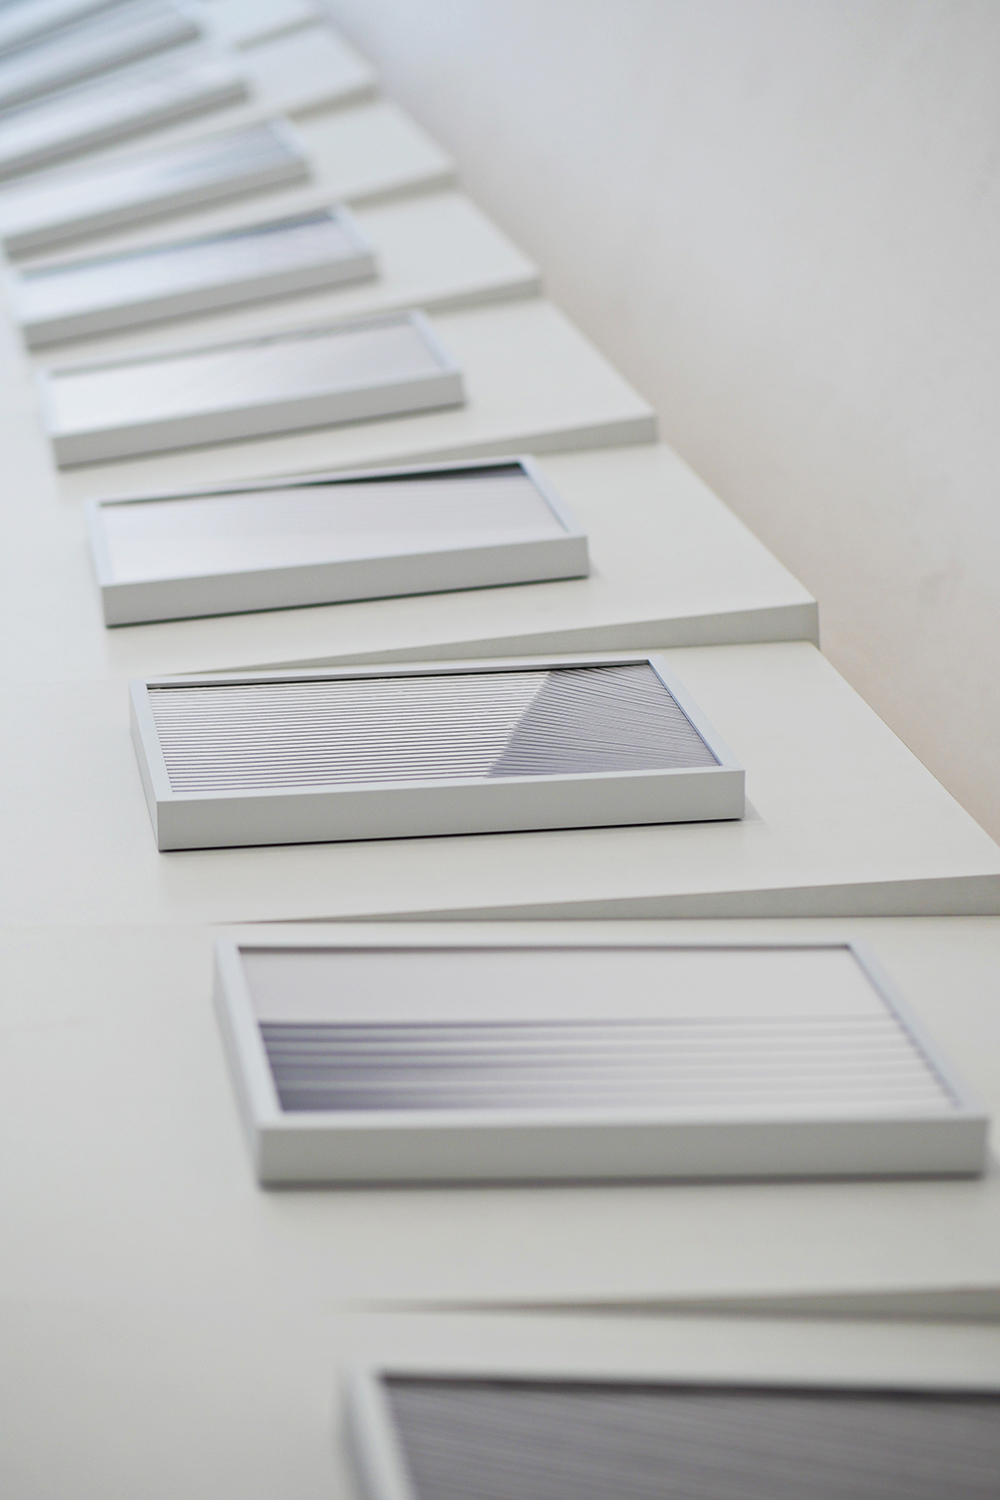 Exhibition View: Kyoungtae Kim. 'Serial Compositions', 2021. einBuch.haus